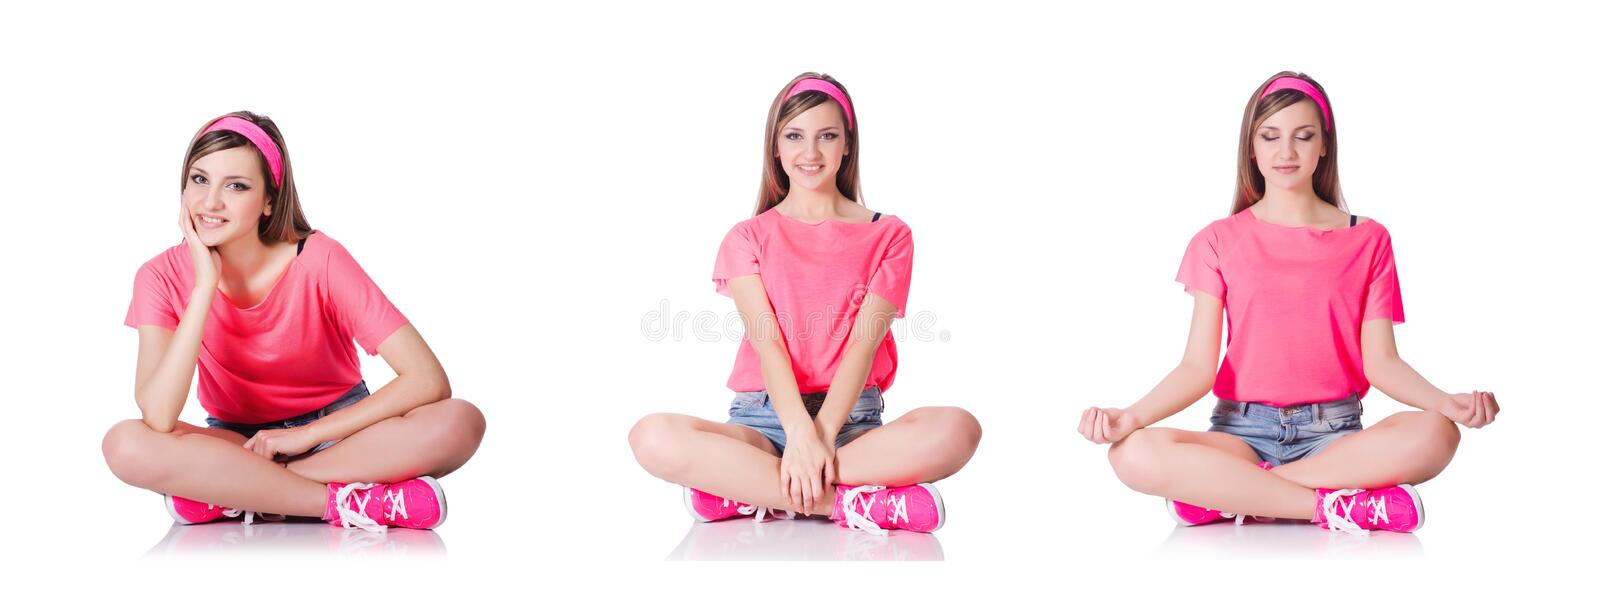 The young woman doing exercises on white royalty free stock images